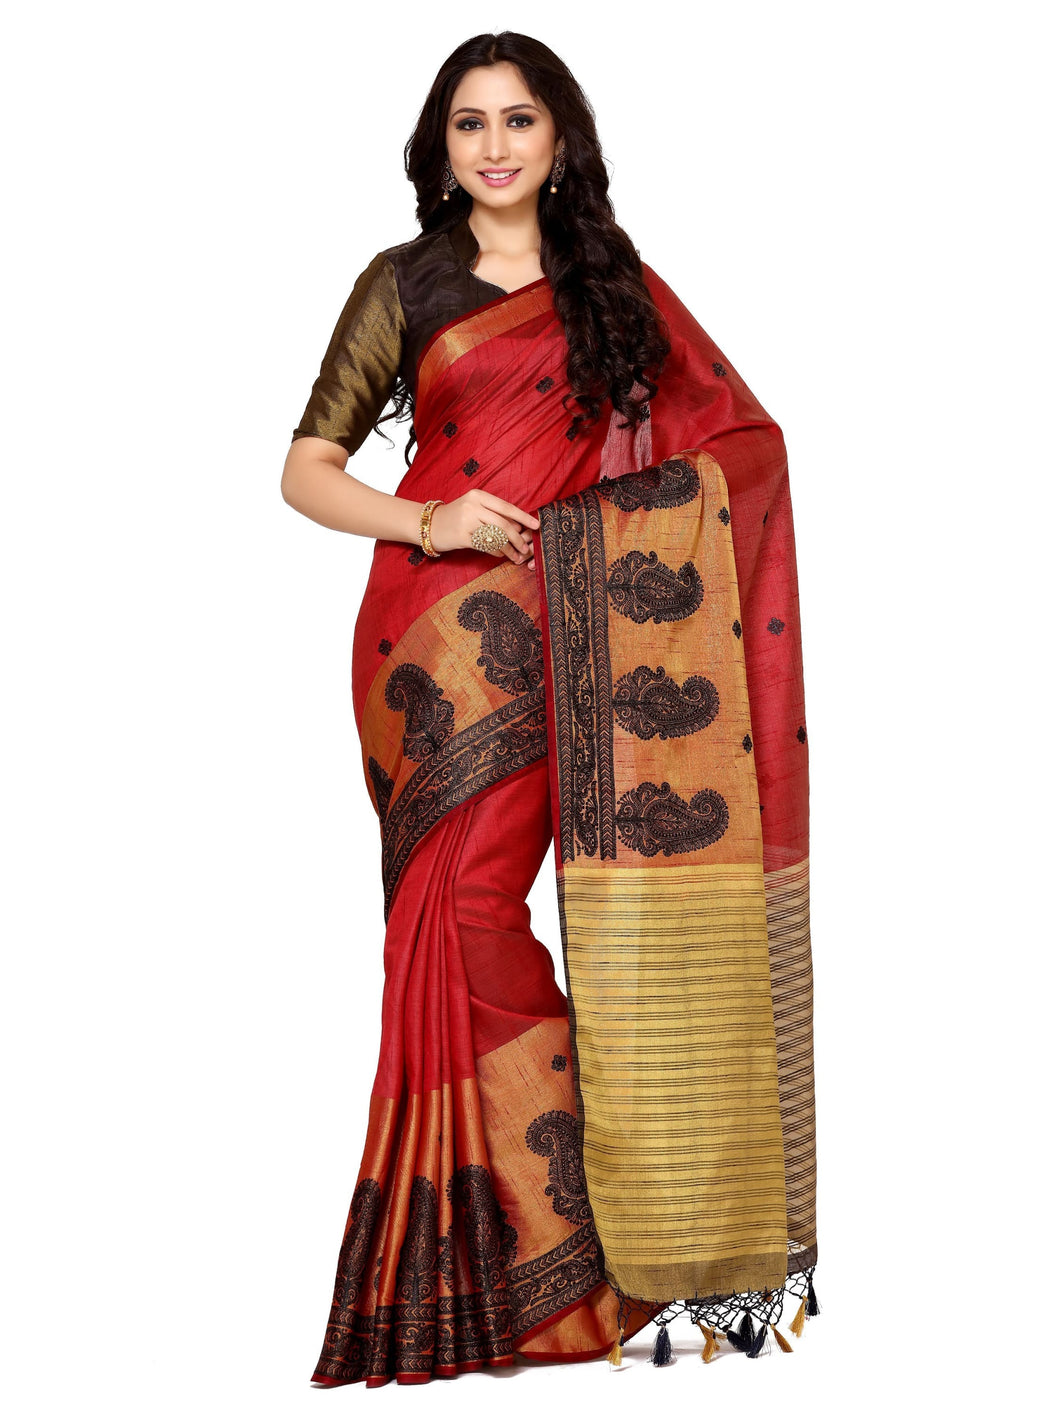 MIMOSA Motif Design Hand Embroidery Work Tussar Silk Saree with Blouse in Color Maroon (4096-2124-bl-mrn) - kupindaindia